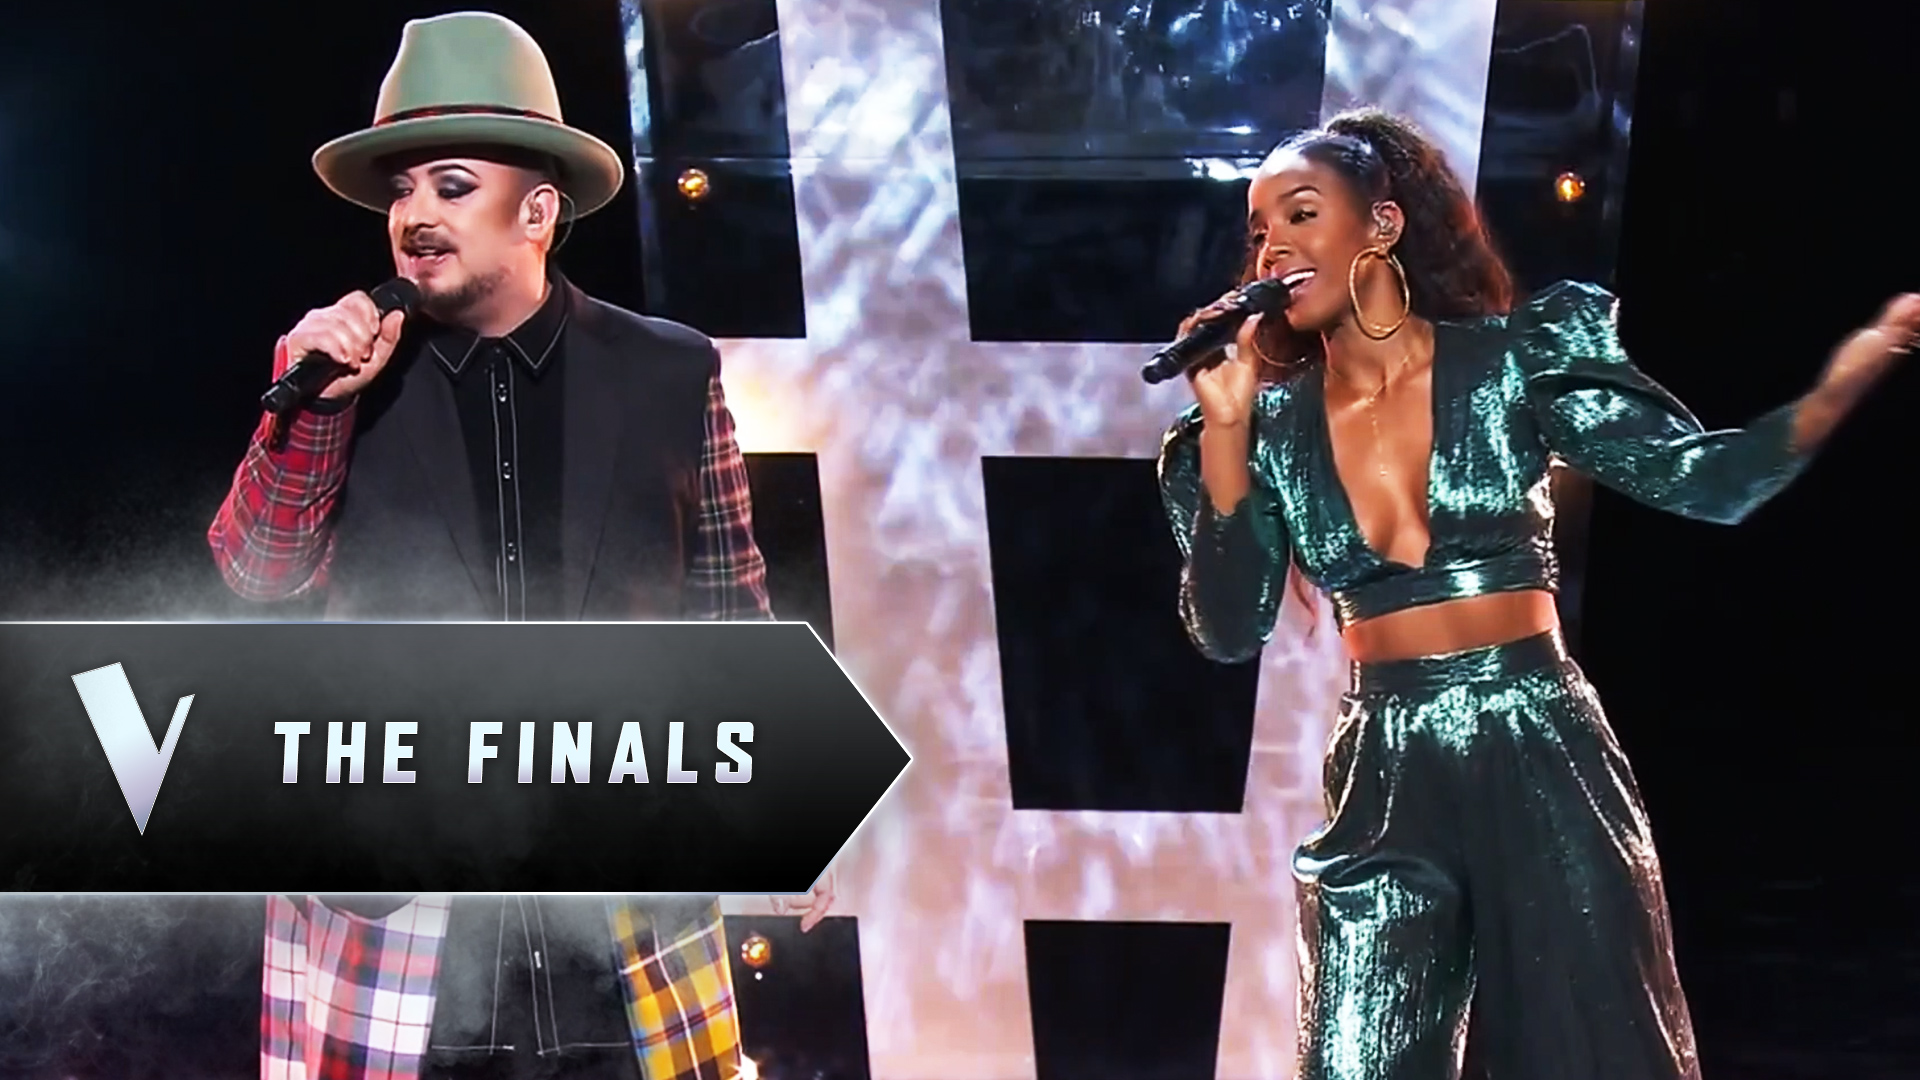 The Finals: Kelly Rowland and Boy George's 'Runaway Train'